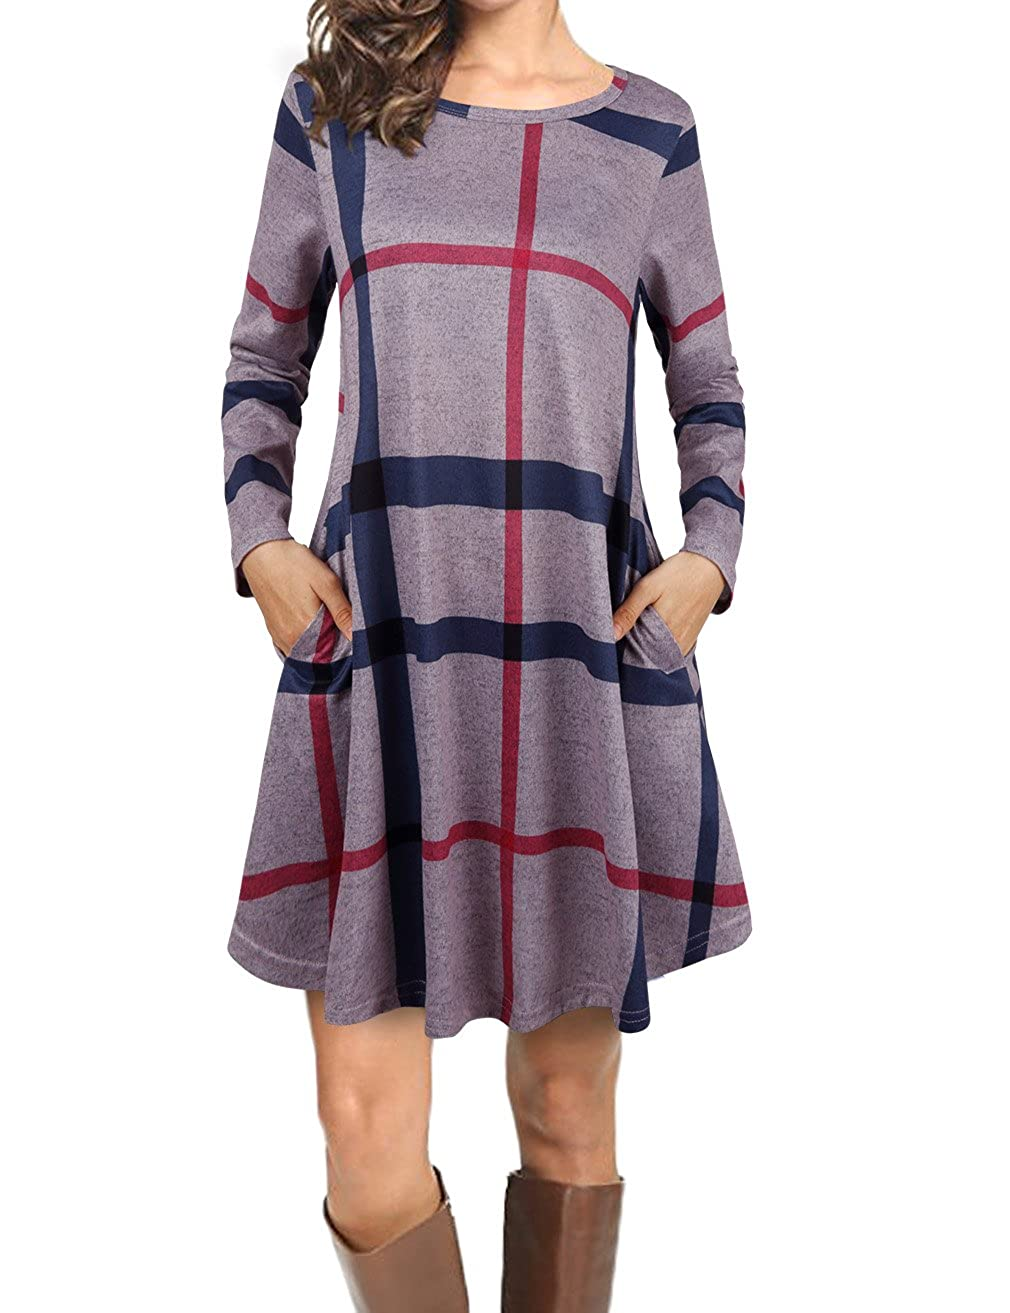 5ae2c4411 FANSIC Women Casual Long Sleeve Loose Checkered Plaid Swing Tunic T-Shirt  Dress with Pocket at Amazon Women's Clothing store: